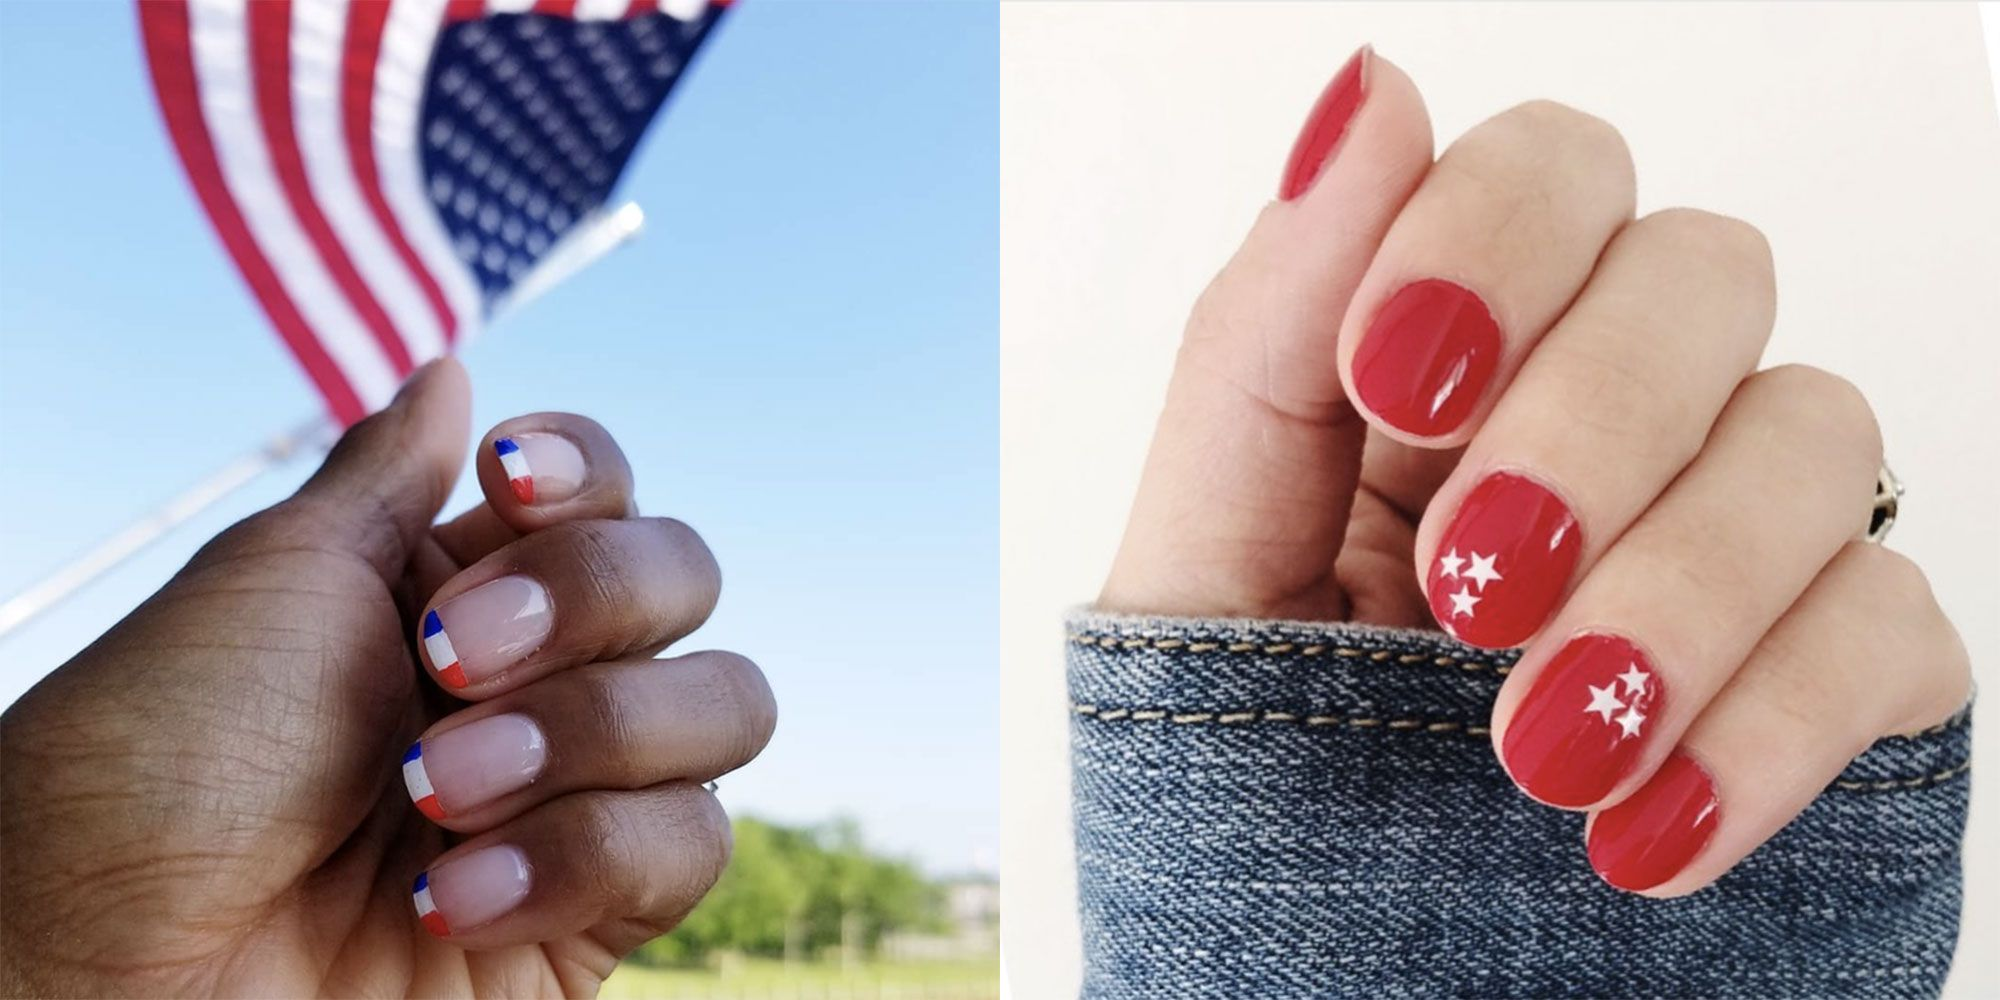 20 Fourth of July Nail Ideas - Red, White and Blue Designs